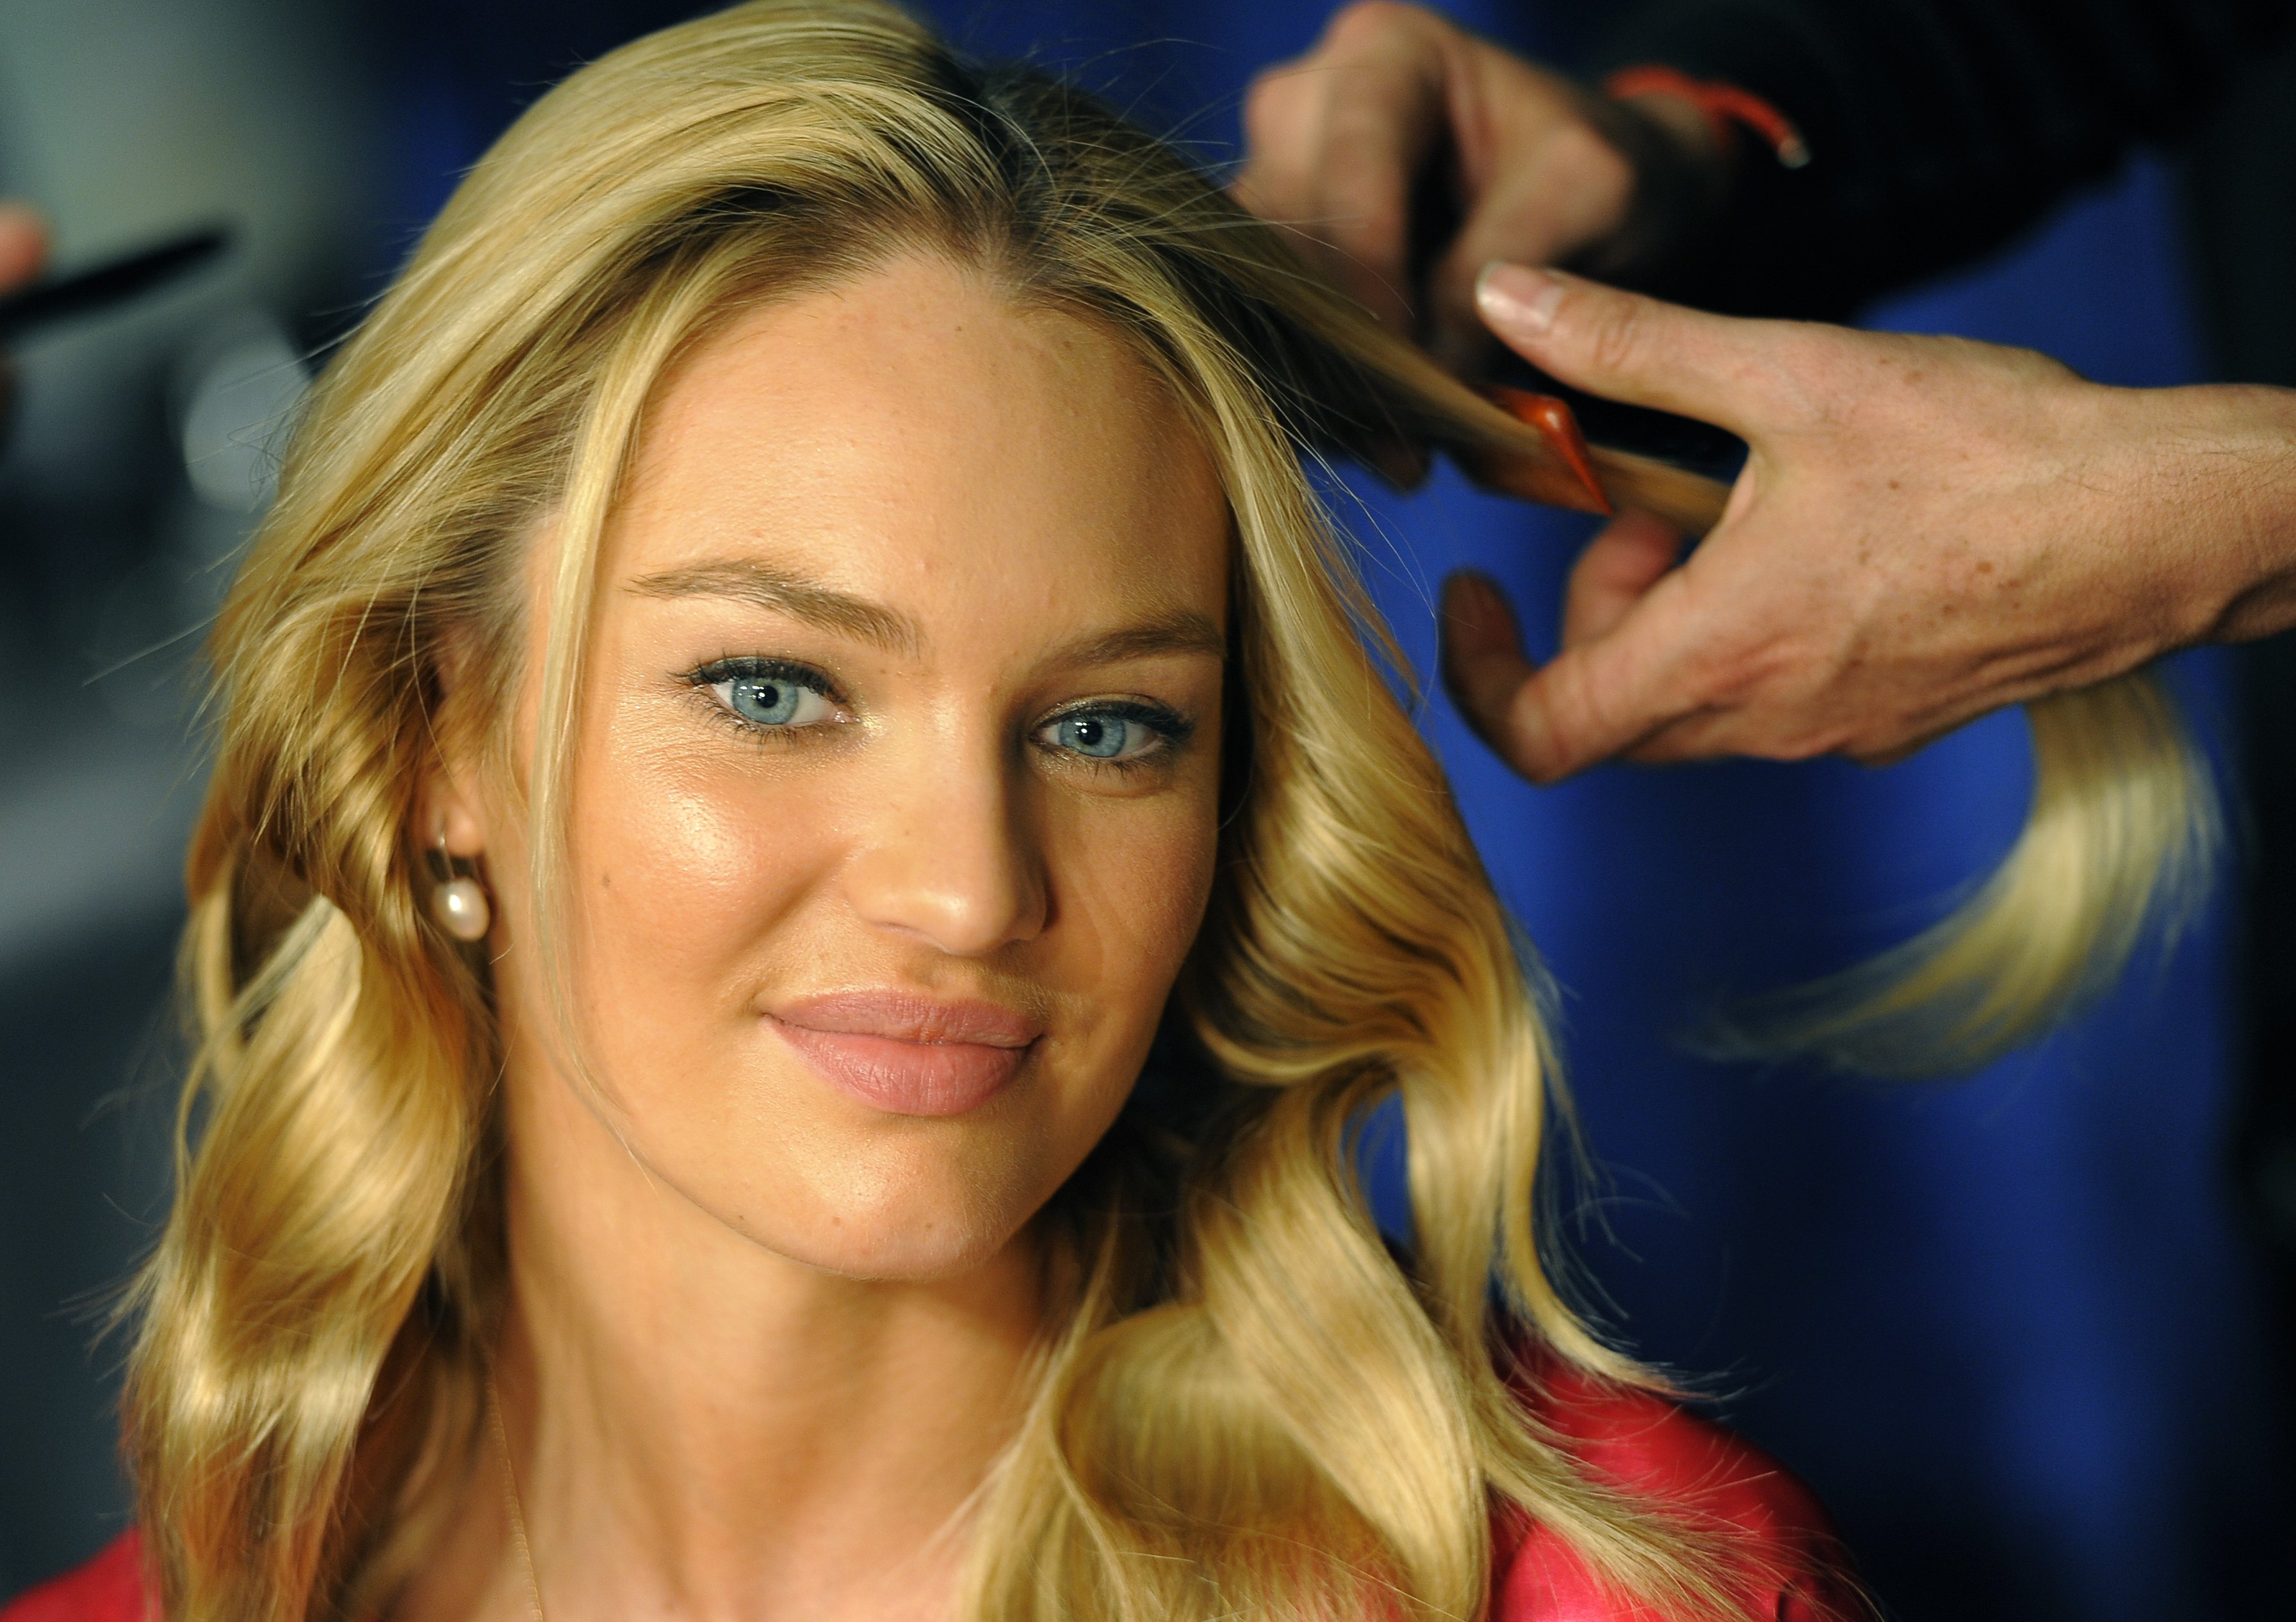 Gallery images and information: Candice Swanepoel Brown Hair Vs Blonde